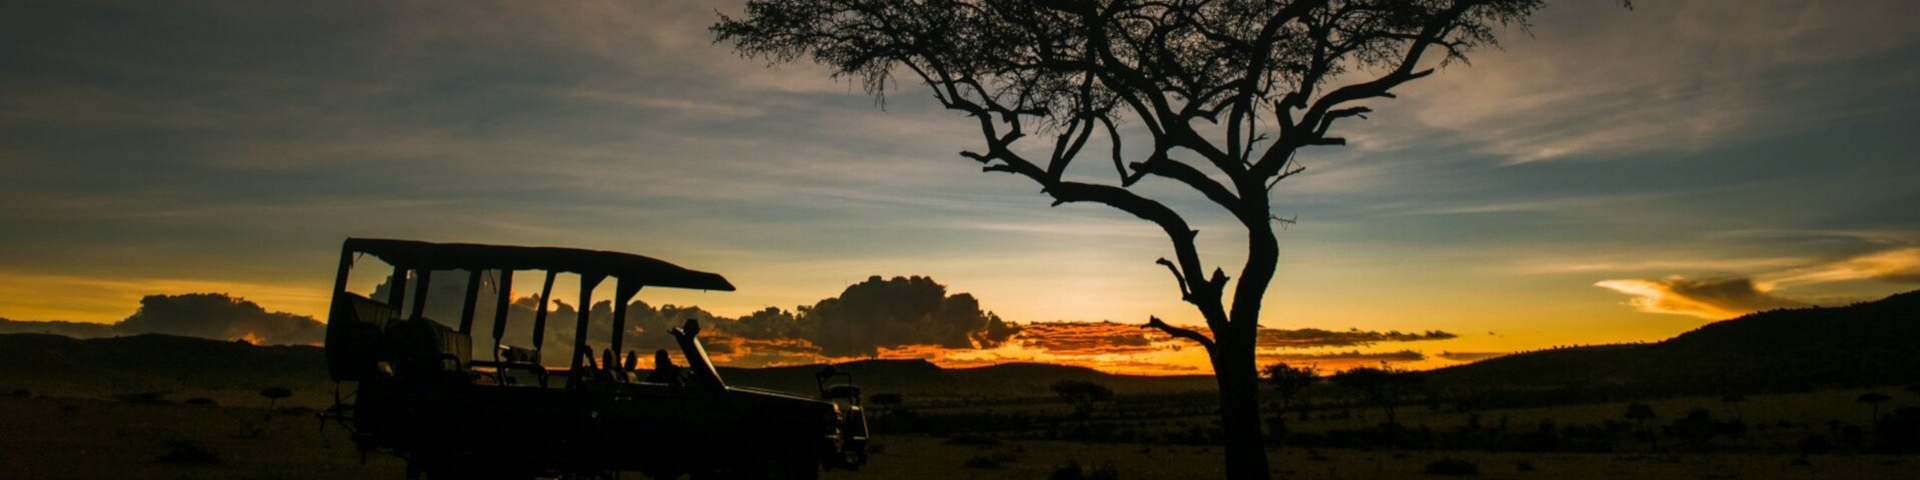 When to Visit Tanzania Night Drive in the Serengeti